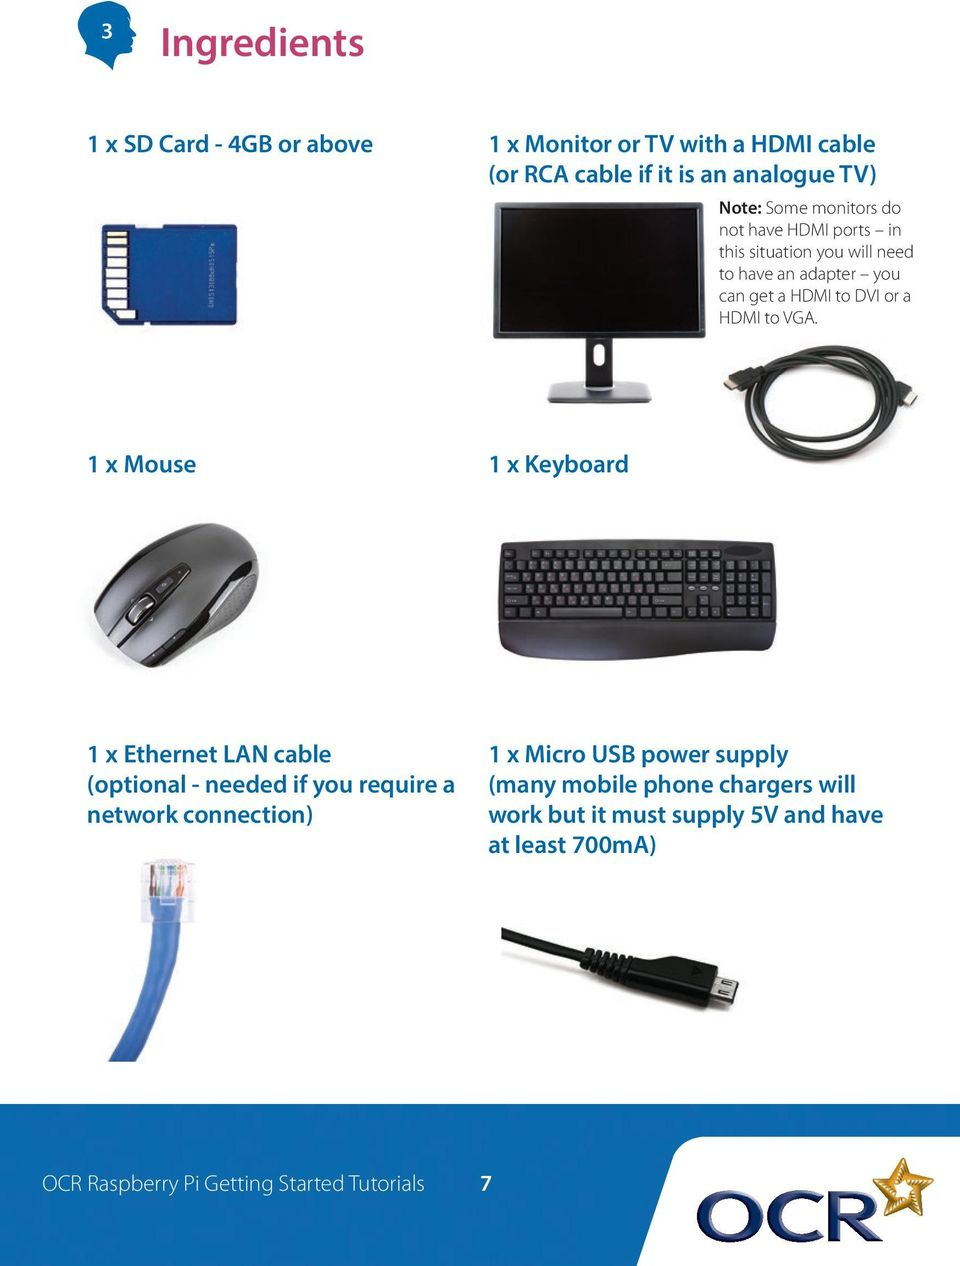 1 x Mouse 1 x Keyboard 1 x Ethernet LAN cable (optional - needed if you require a network connection) 1 x Micro USB power